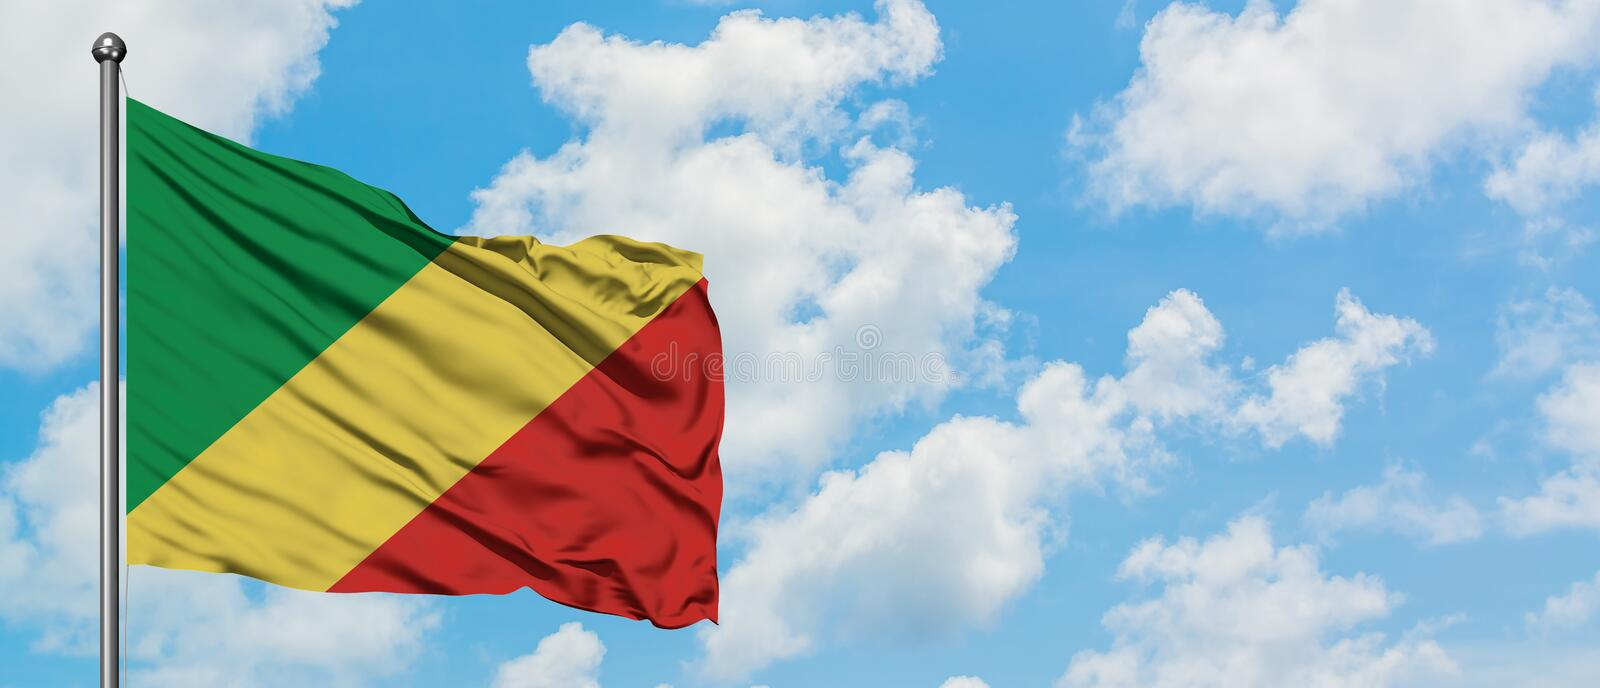 Republic Of The Congo flag waving in the wind against white cloudy blue sky. Diplomacy concept, international relations.  royalty free stock photo